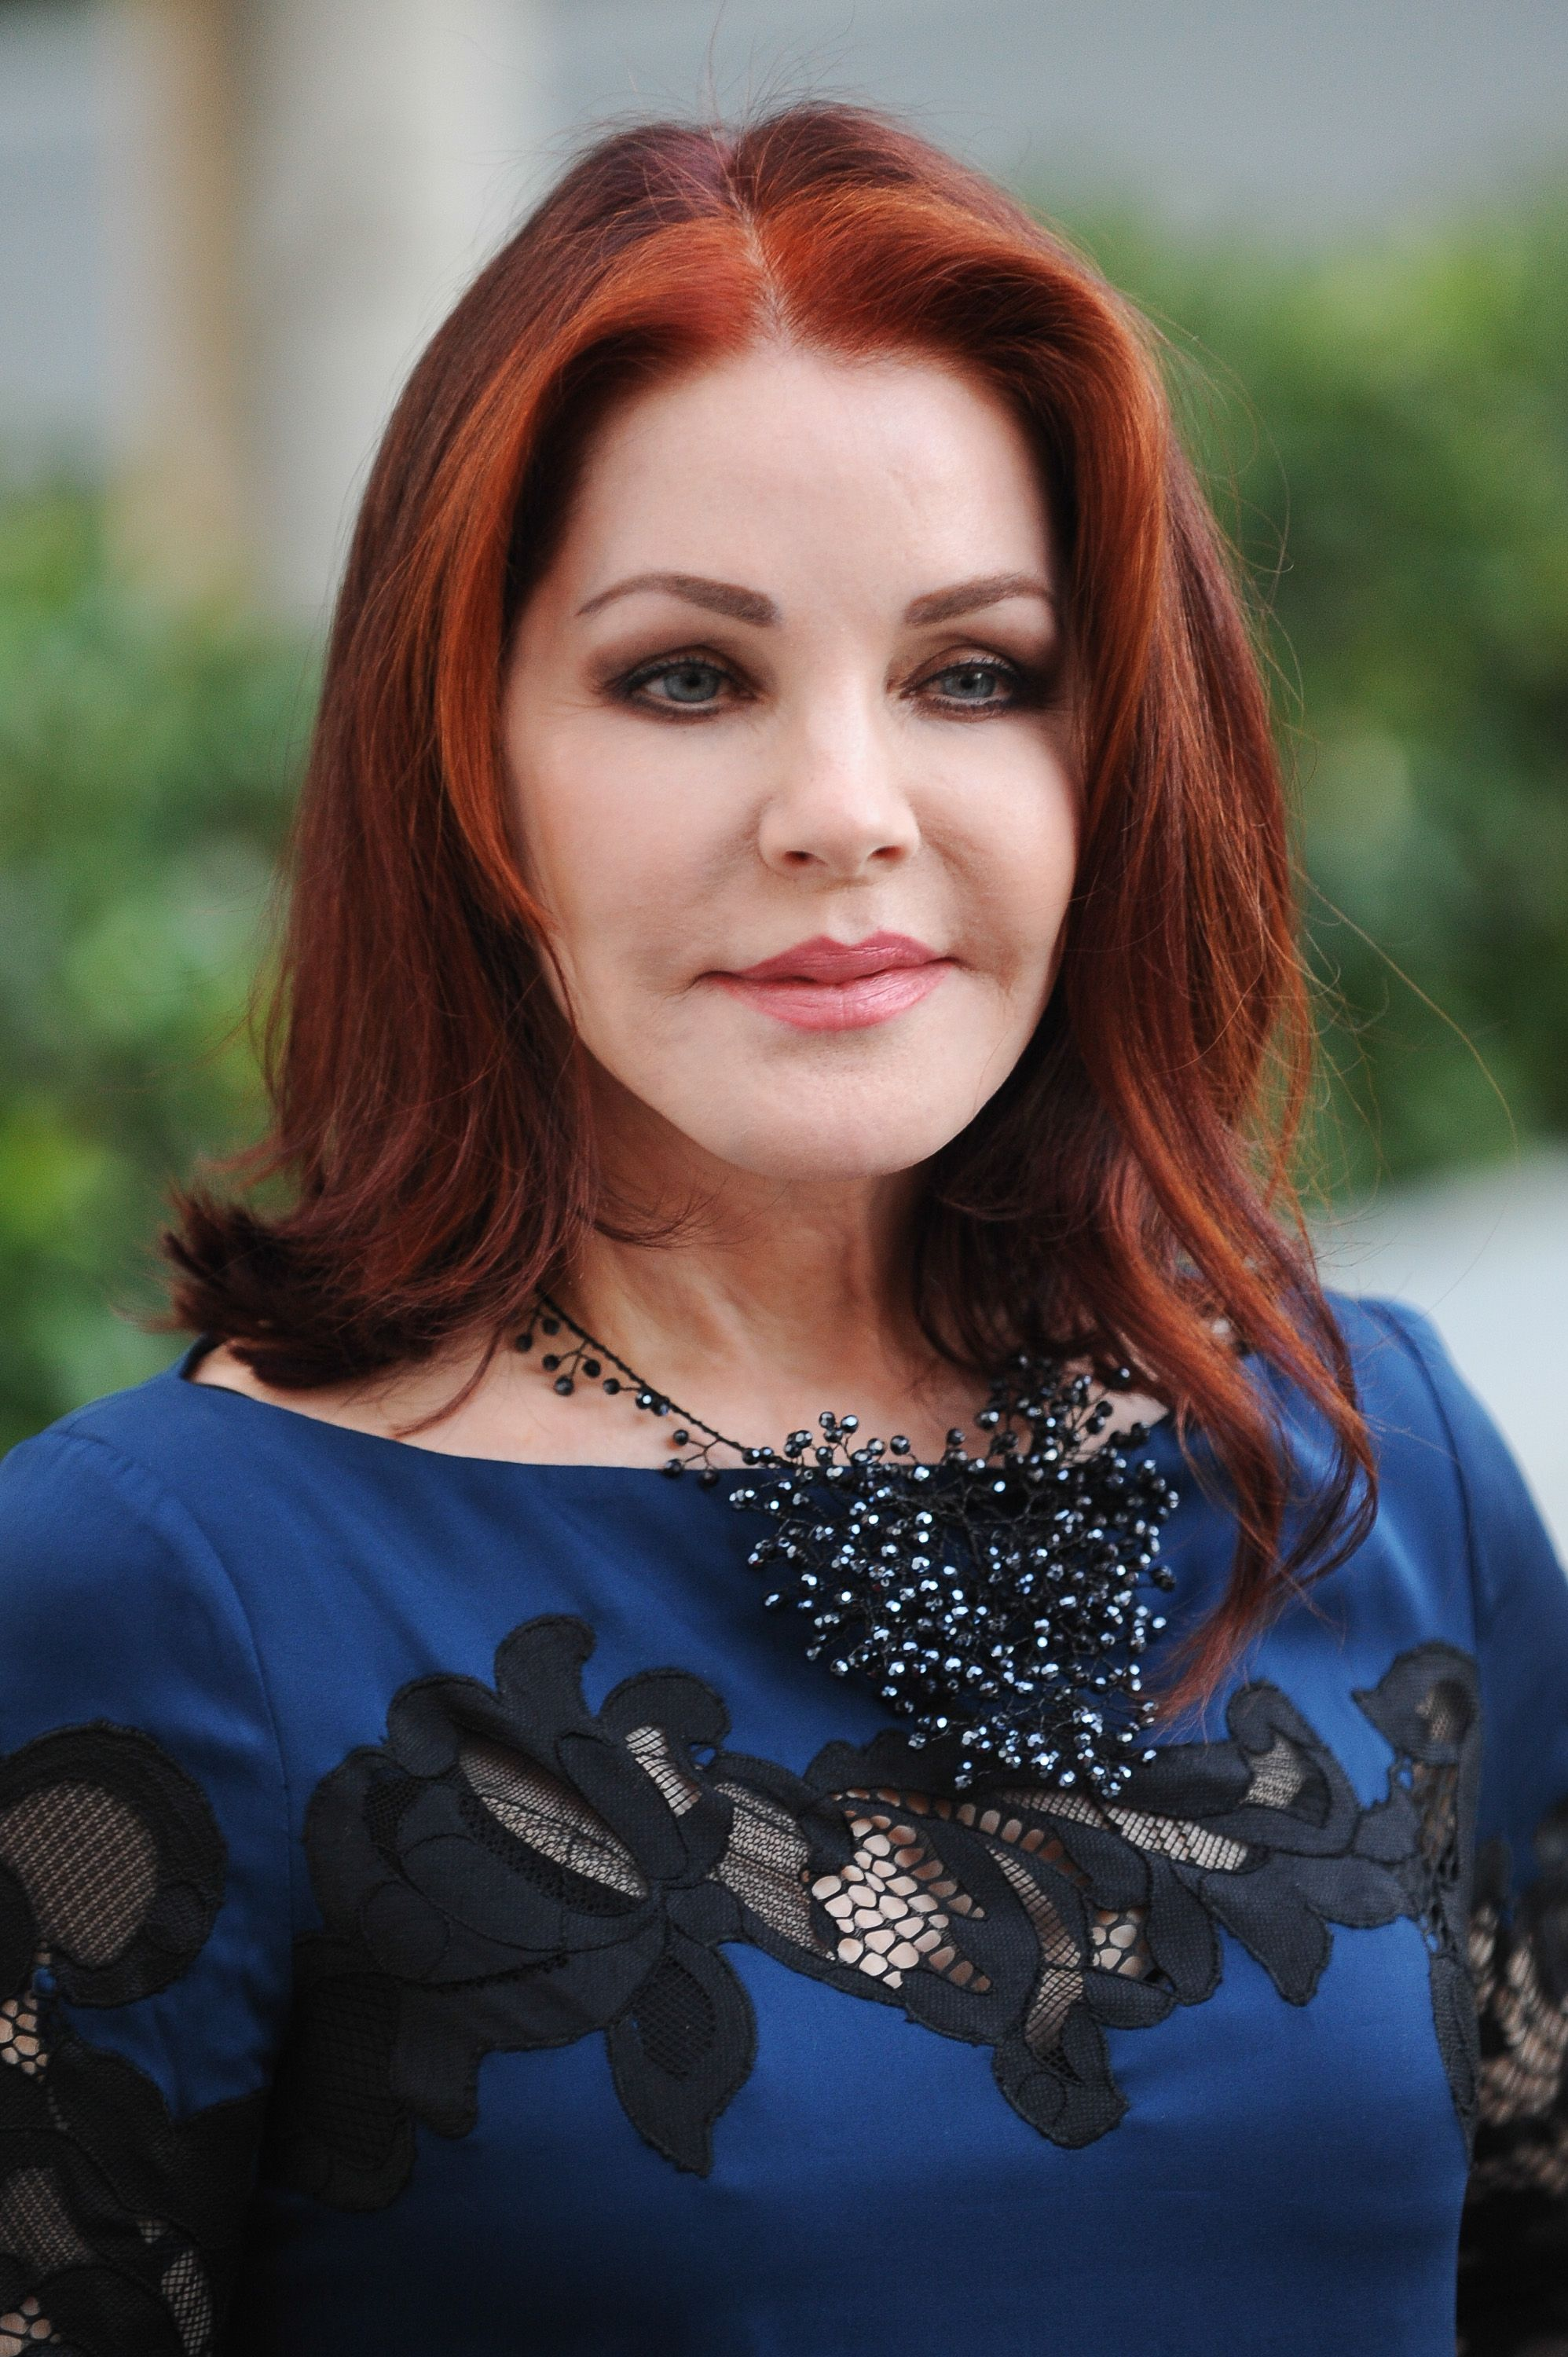 Priscilla Presley Reflects On Wedding Memories Shared With Late Husband Elvis Presley Priscilla Presley Young Priscilla Presley Elvis Presley